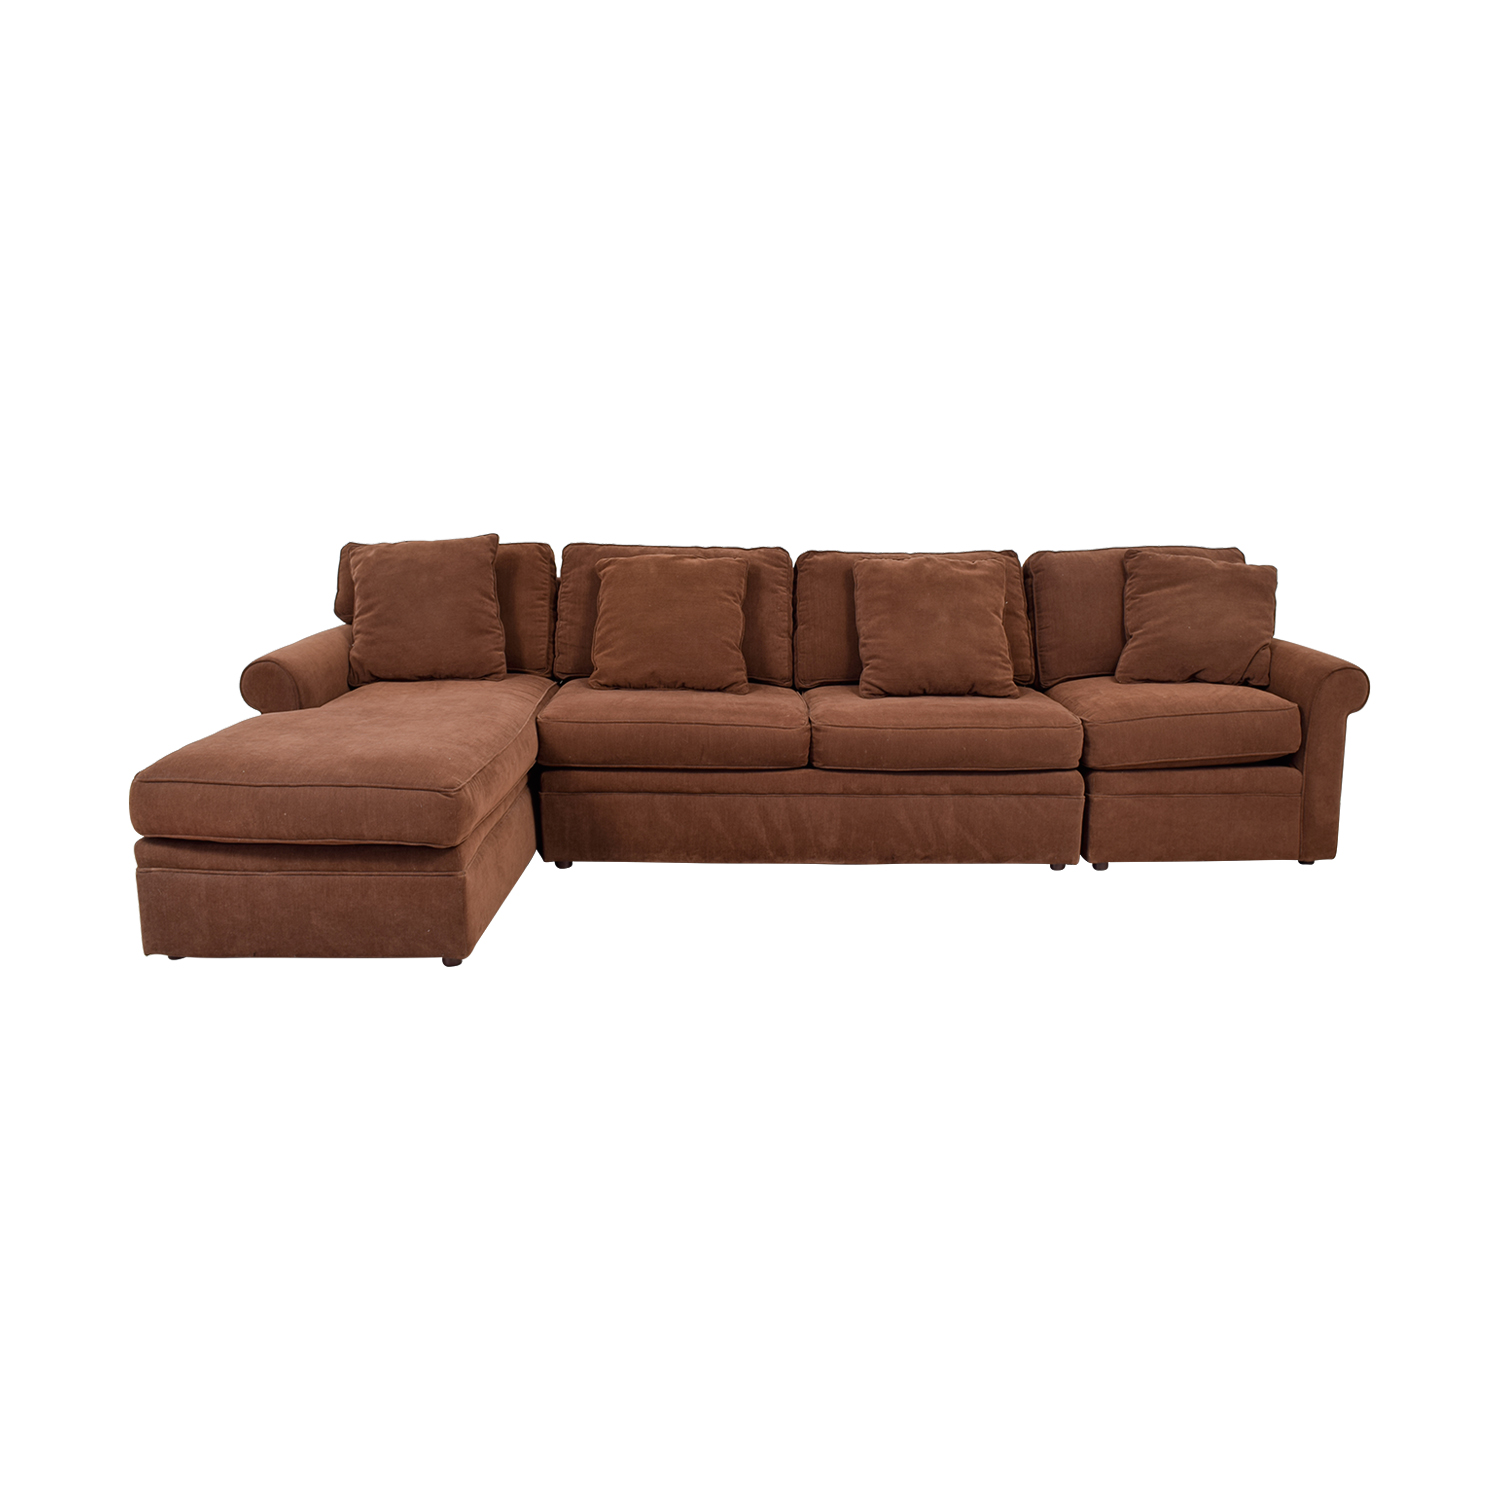 90% OFF - Rowe Furniture Rowe Furniture Brown Sectional ...